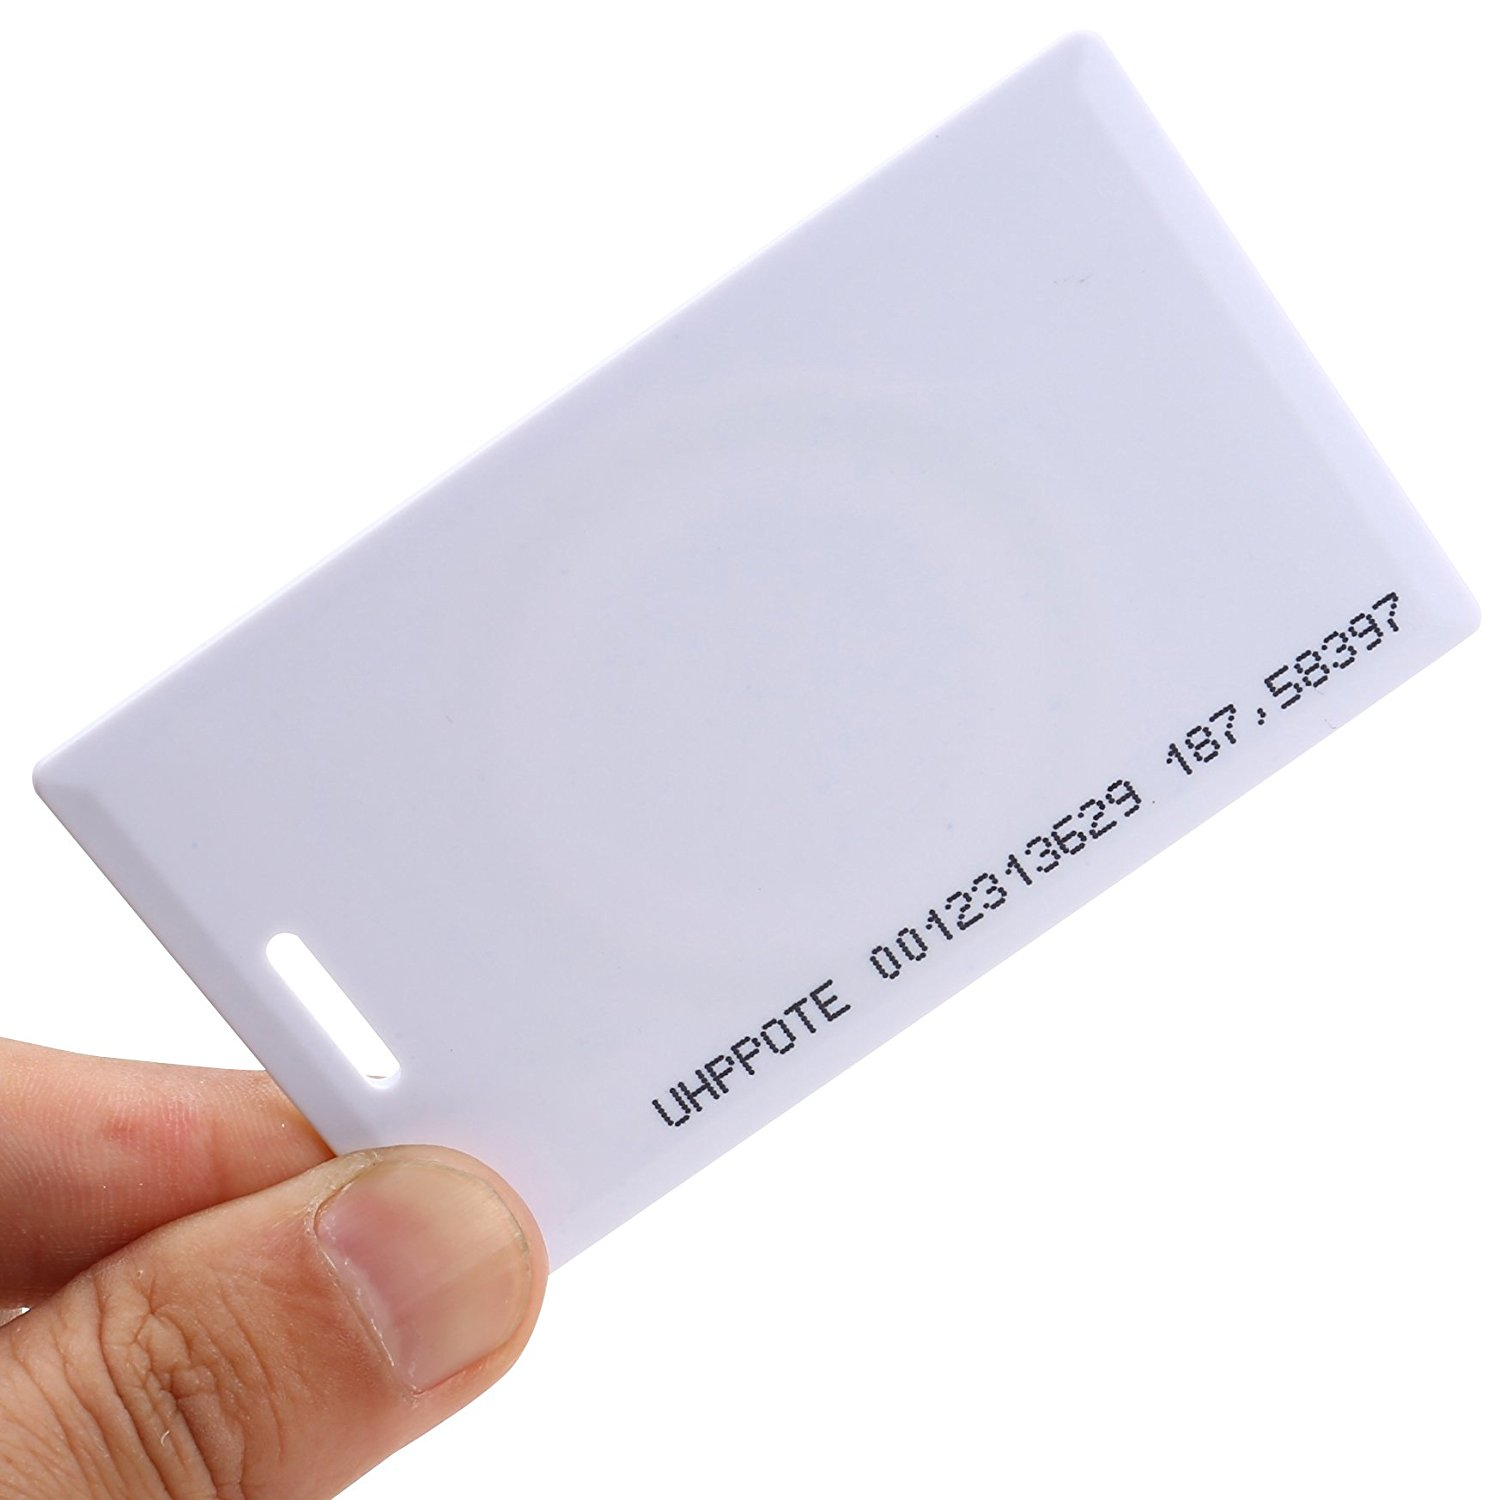 125Khz T5577 RFID Proximity 1.8mm thick card/clamshell for door access control